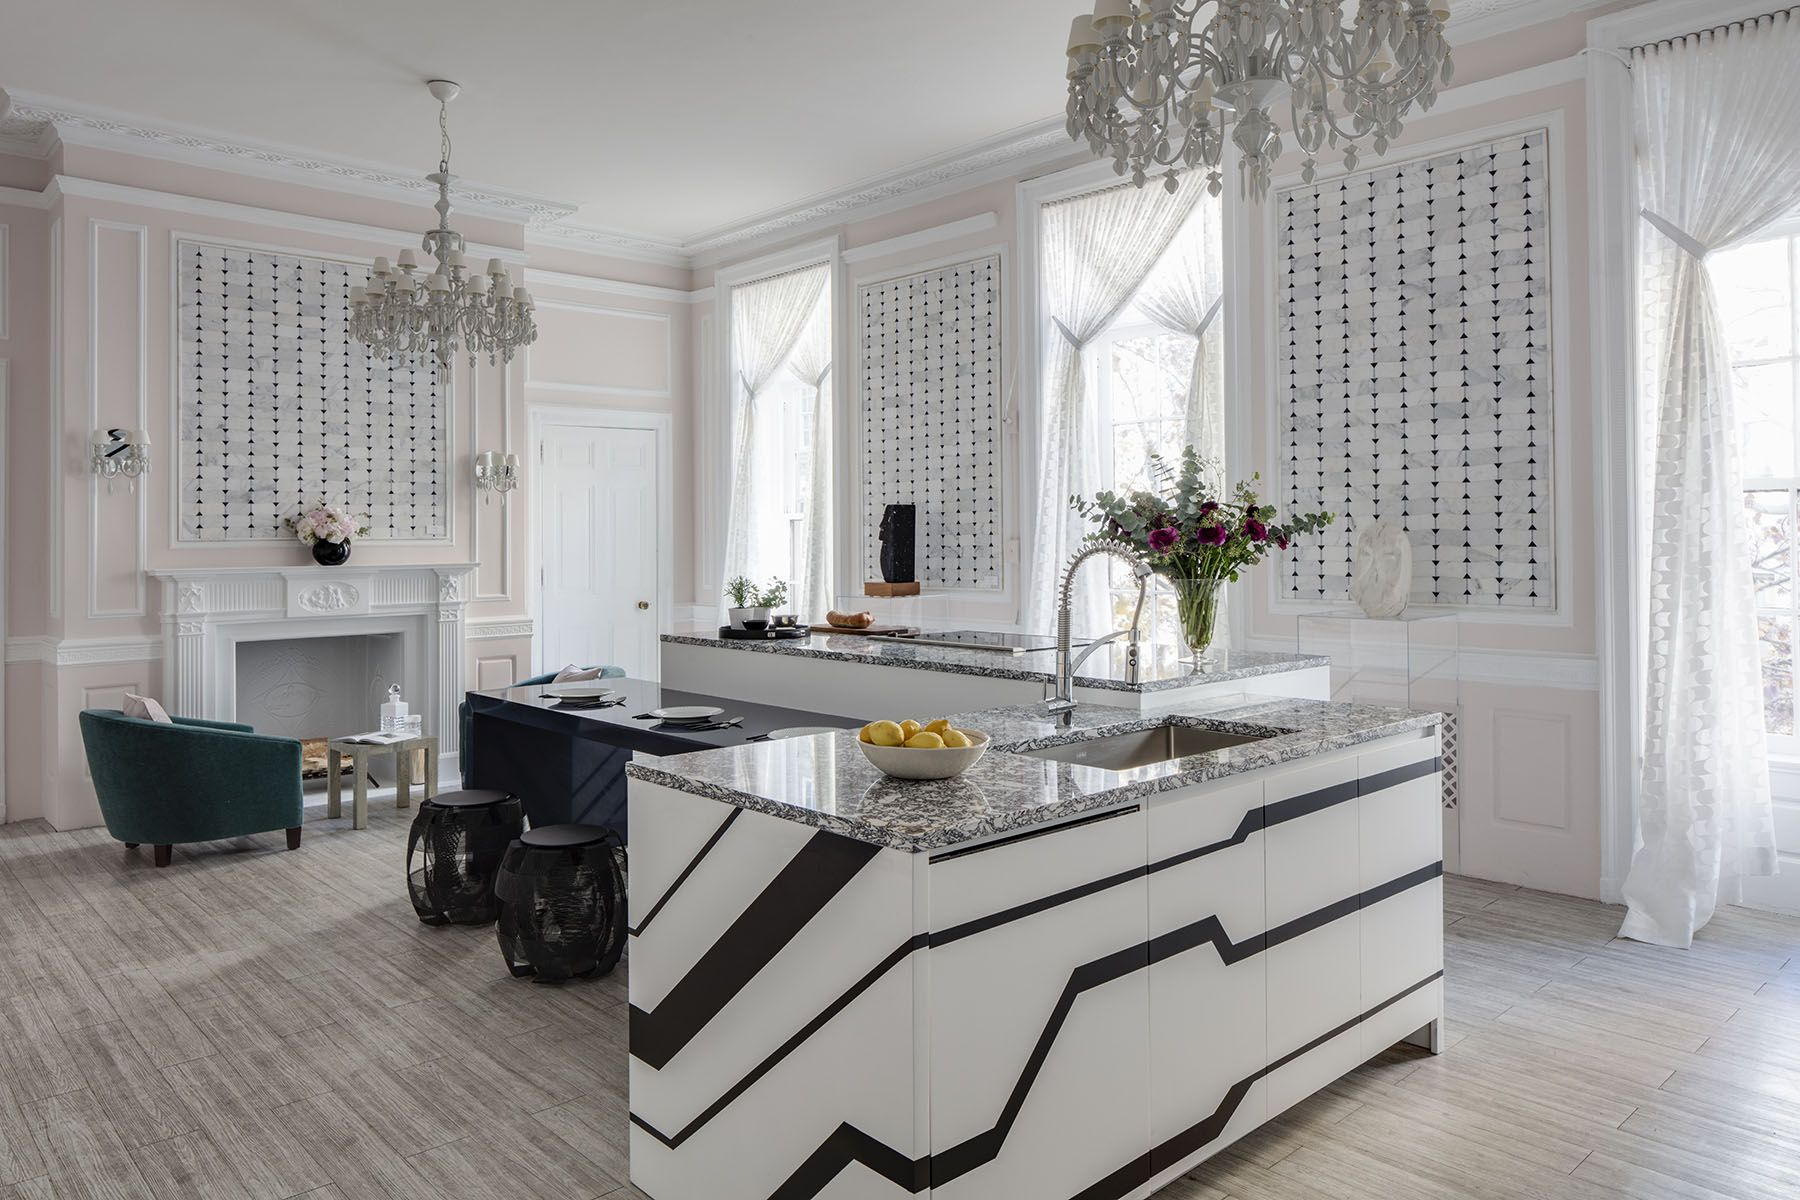 Delightful What To Expect From Kitchen Designs In 2019